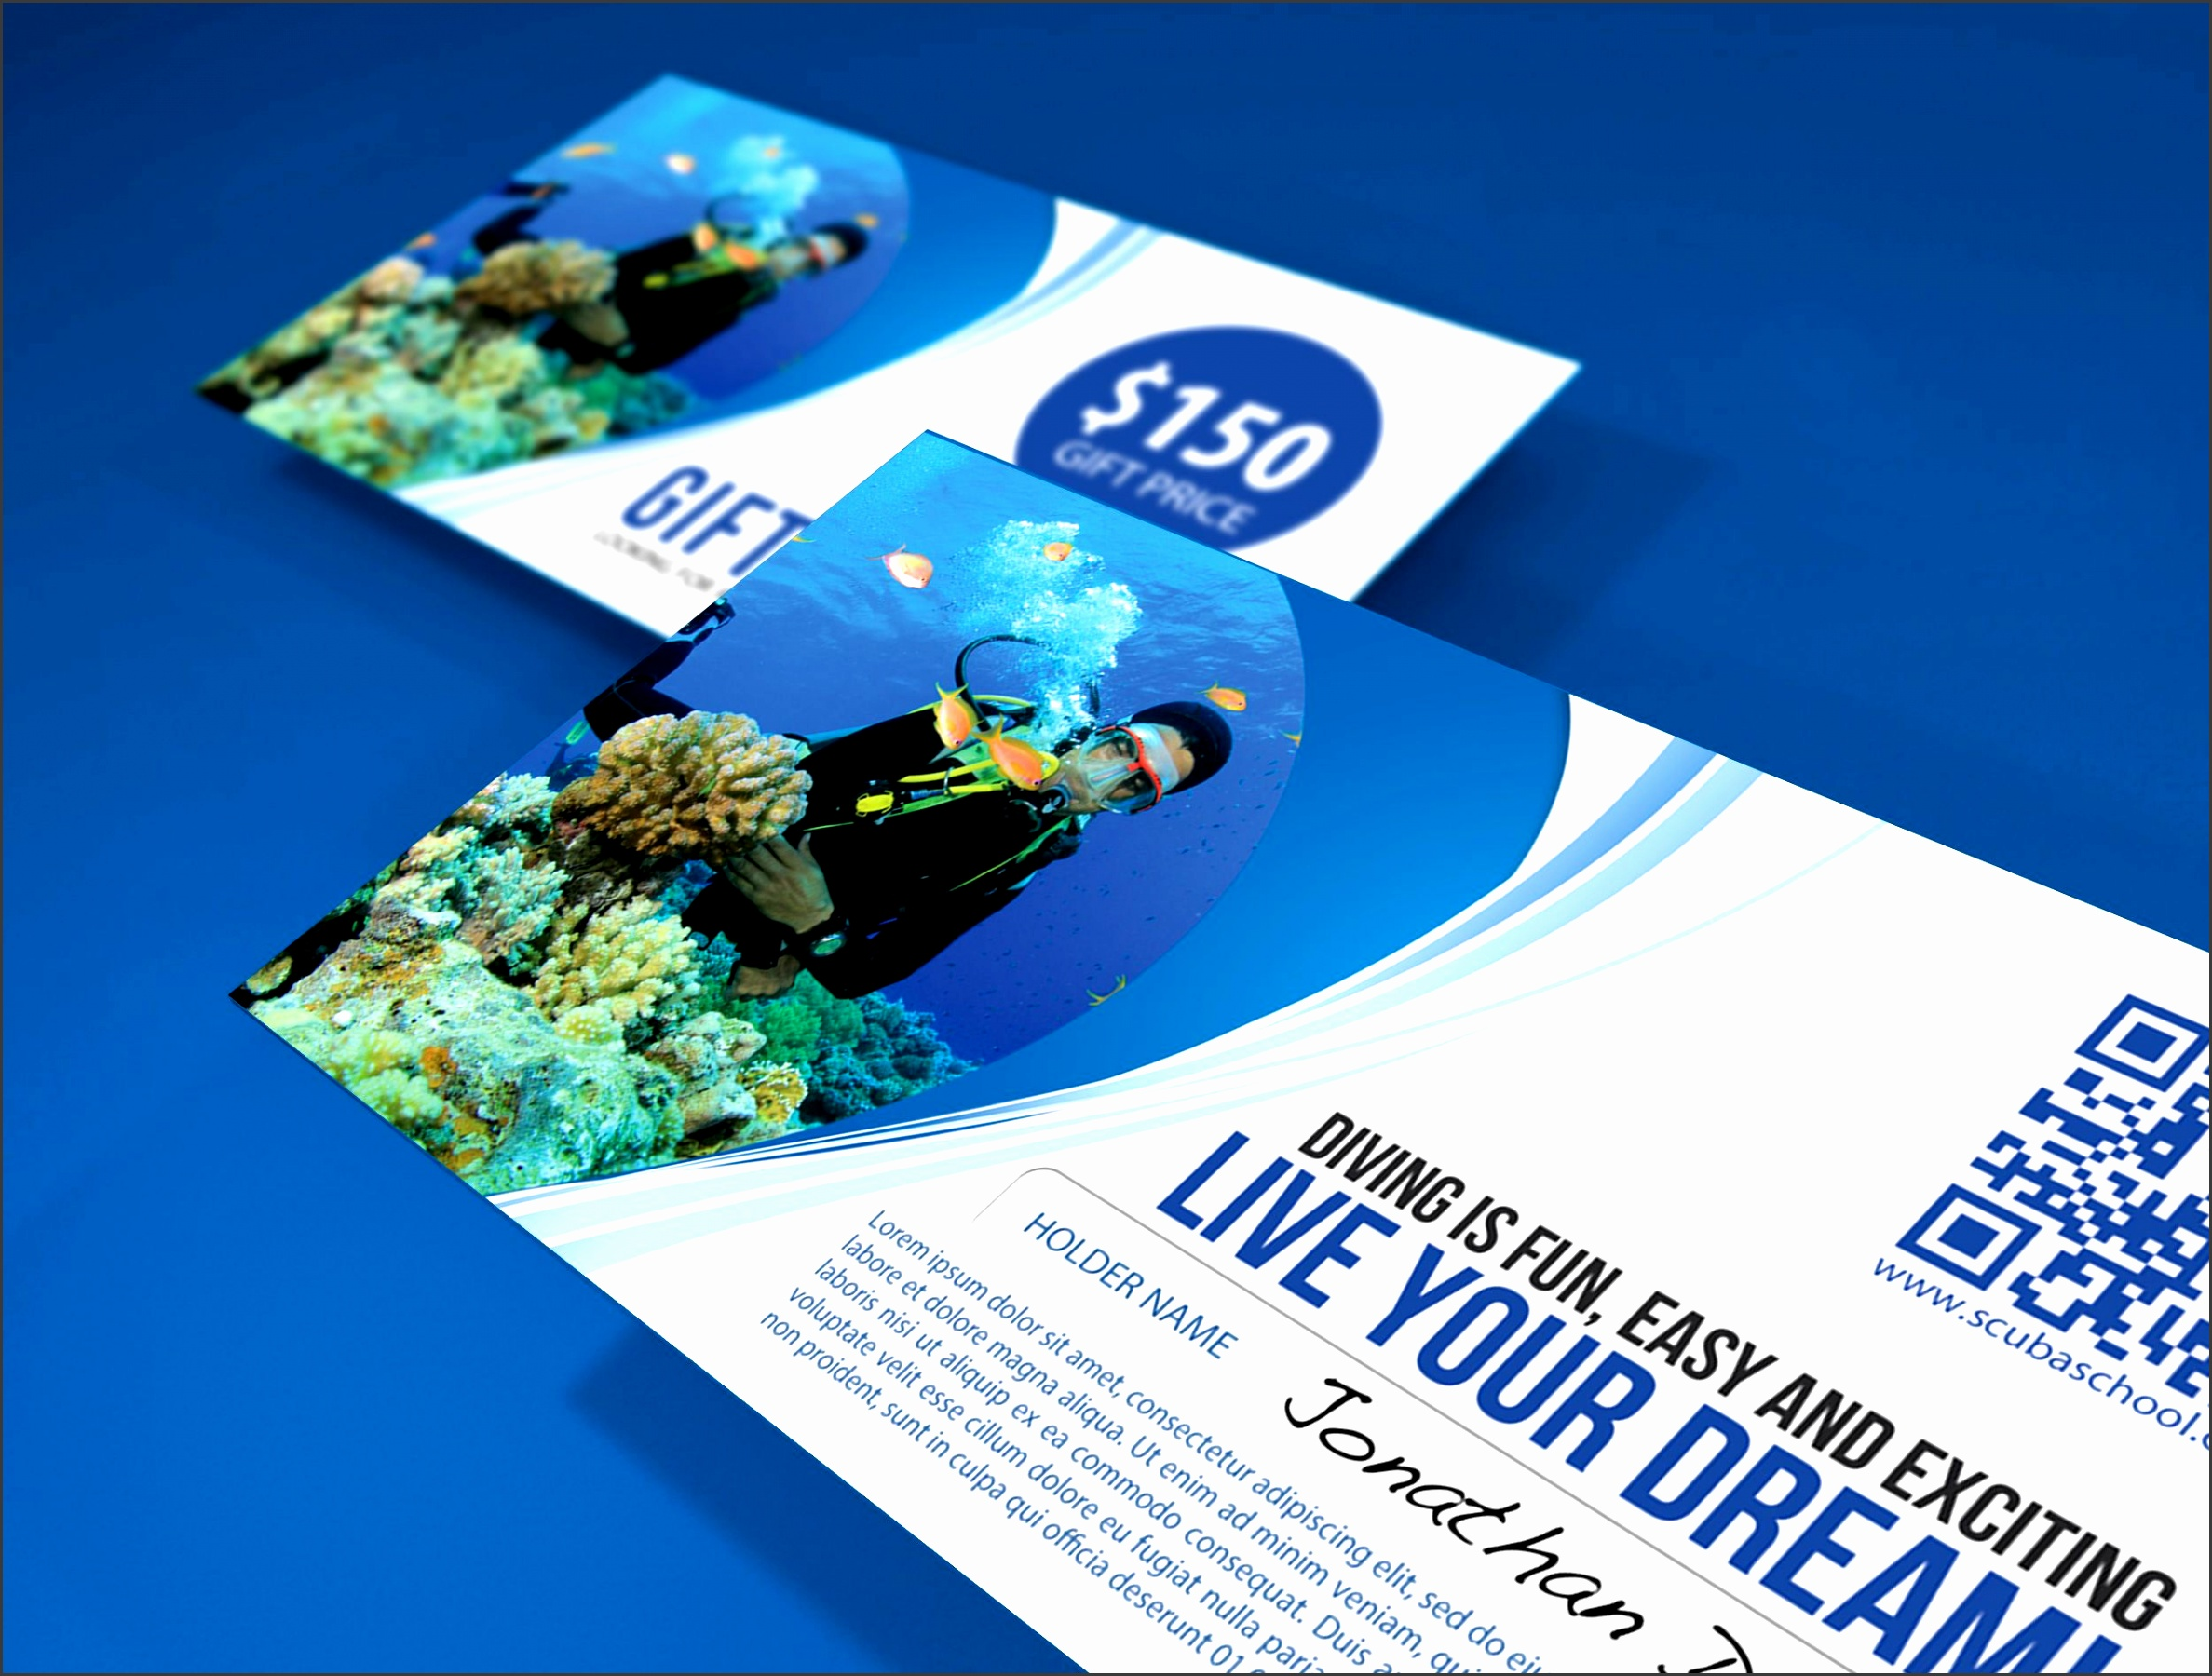 Scuba Gift Voucher Template Miscellaneous Print Templates Codester 001 Scuba Gift Voucher Template Fun Voucher Template Fun Voucher Template